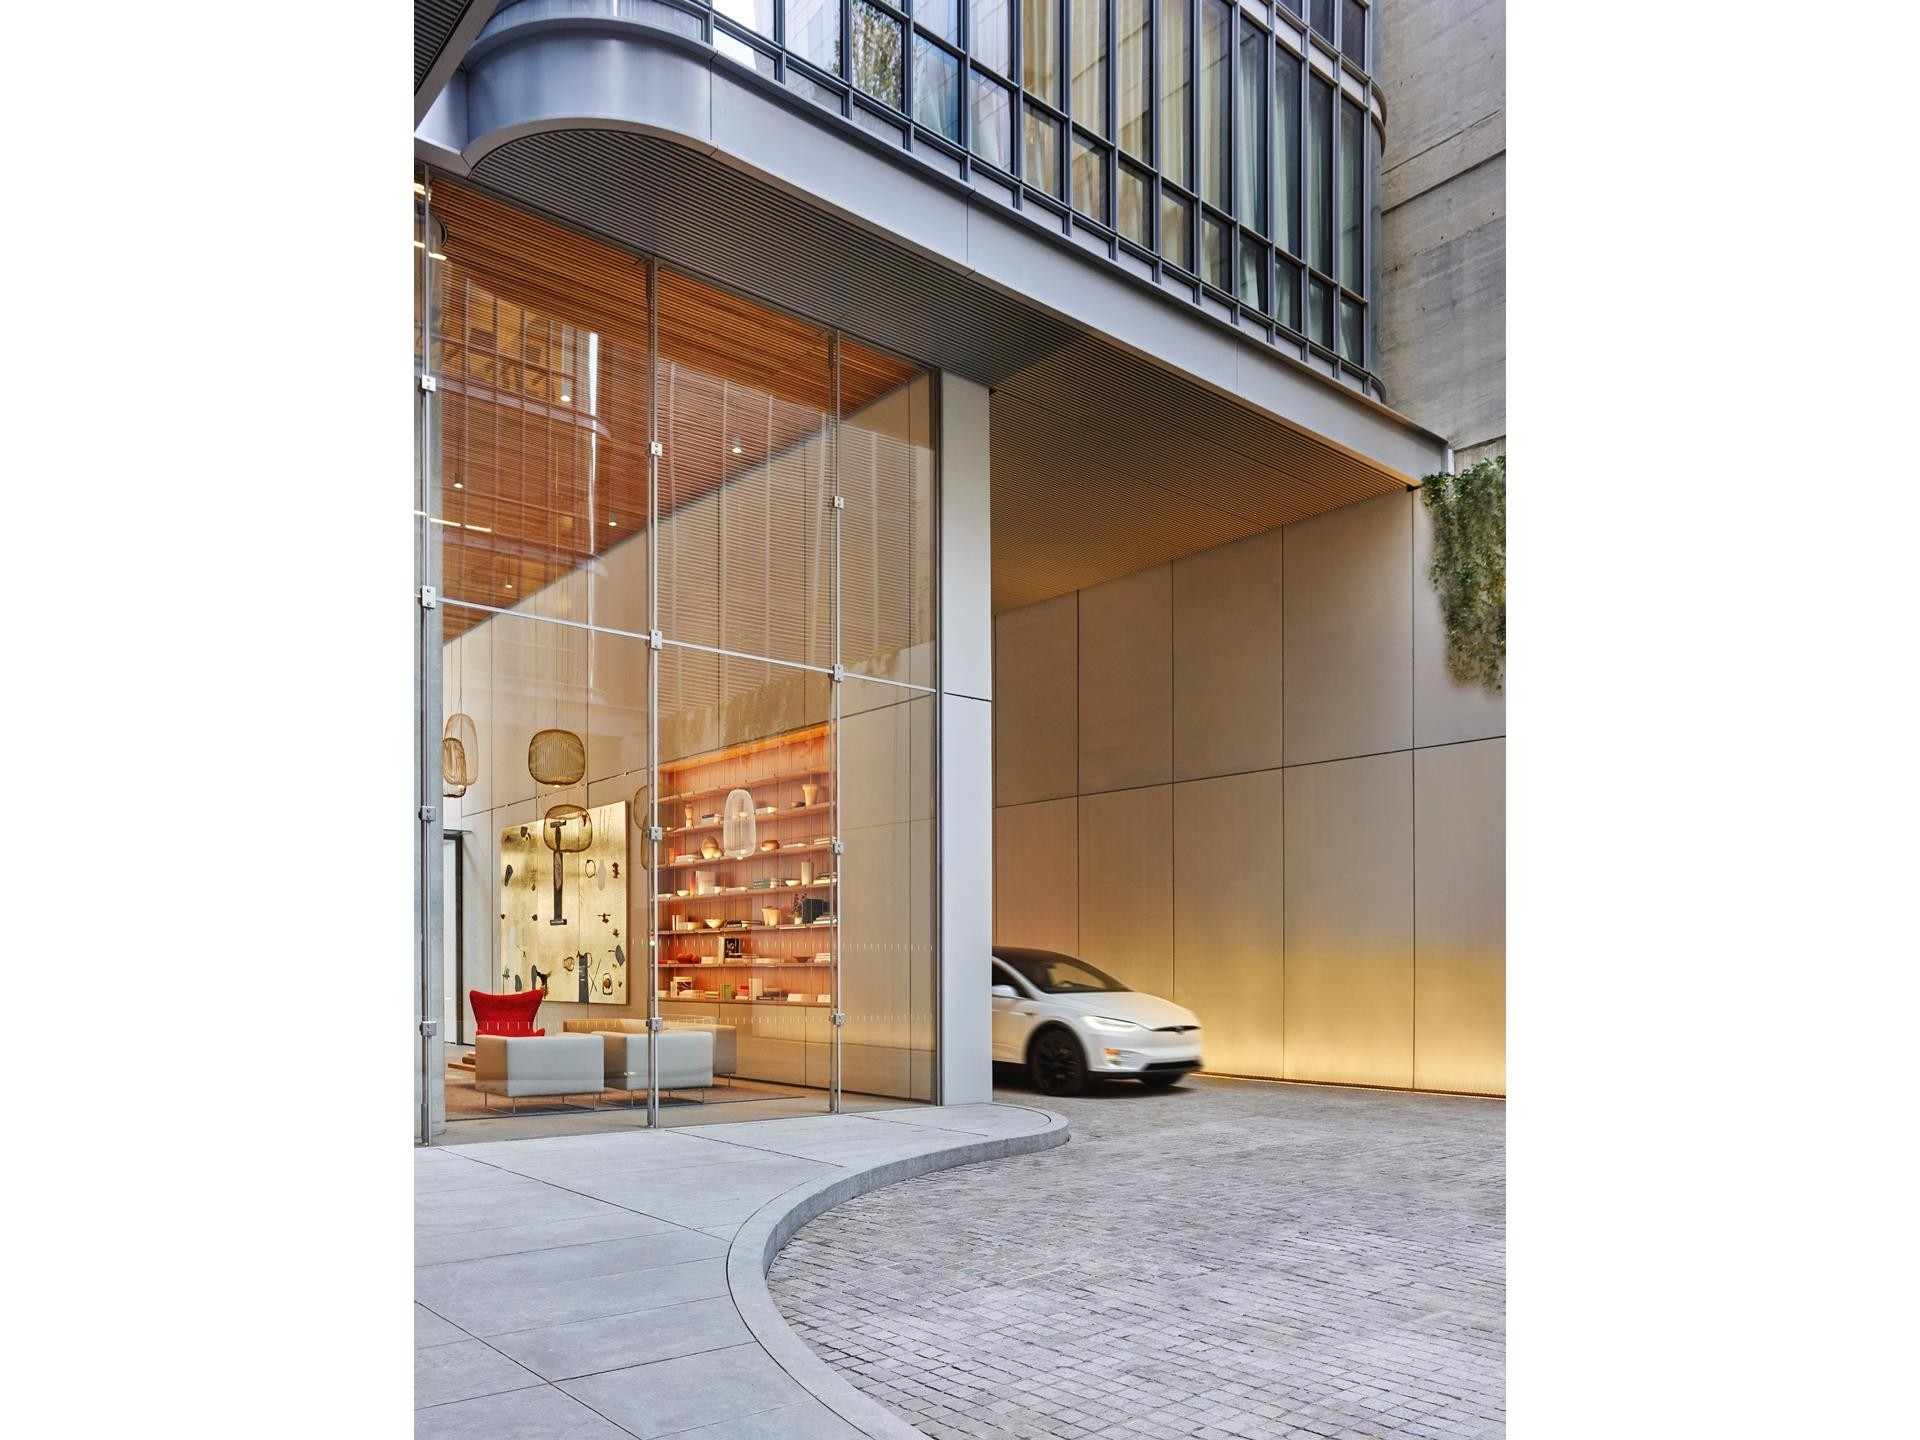 7. Condominiums for Sale at 565 Broome St, SOUTHPHB Hudson Square, New York, NY 10013